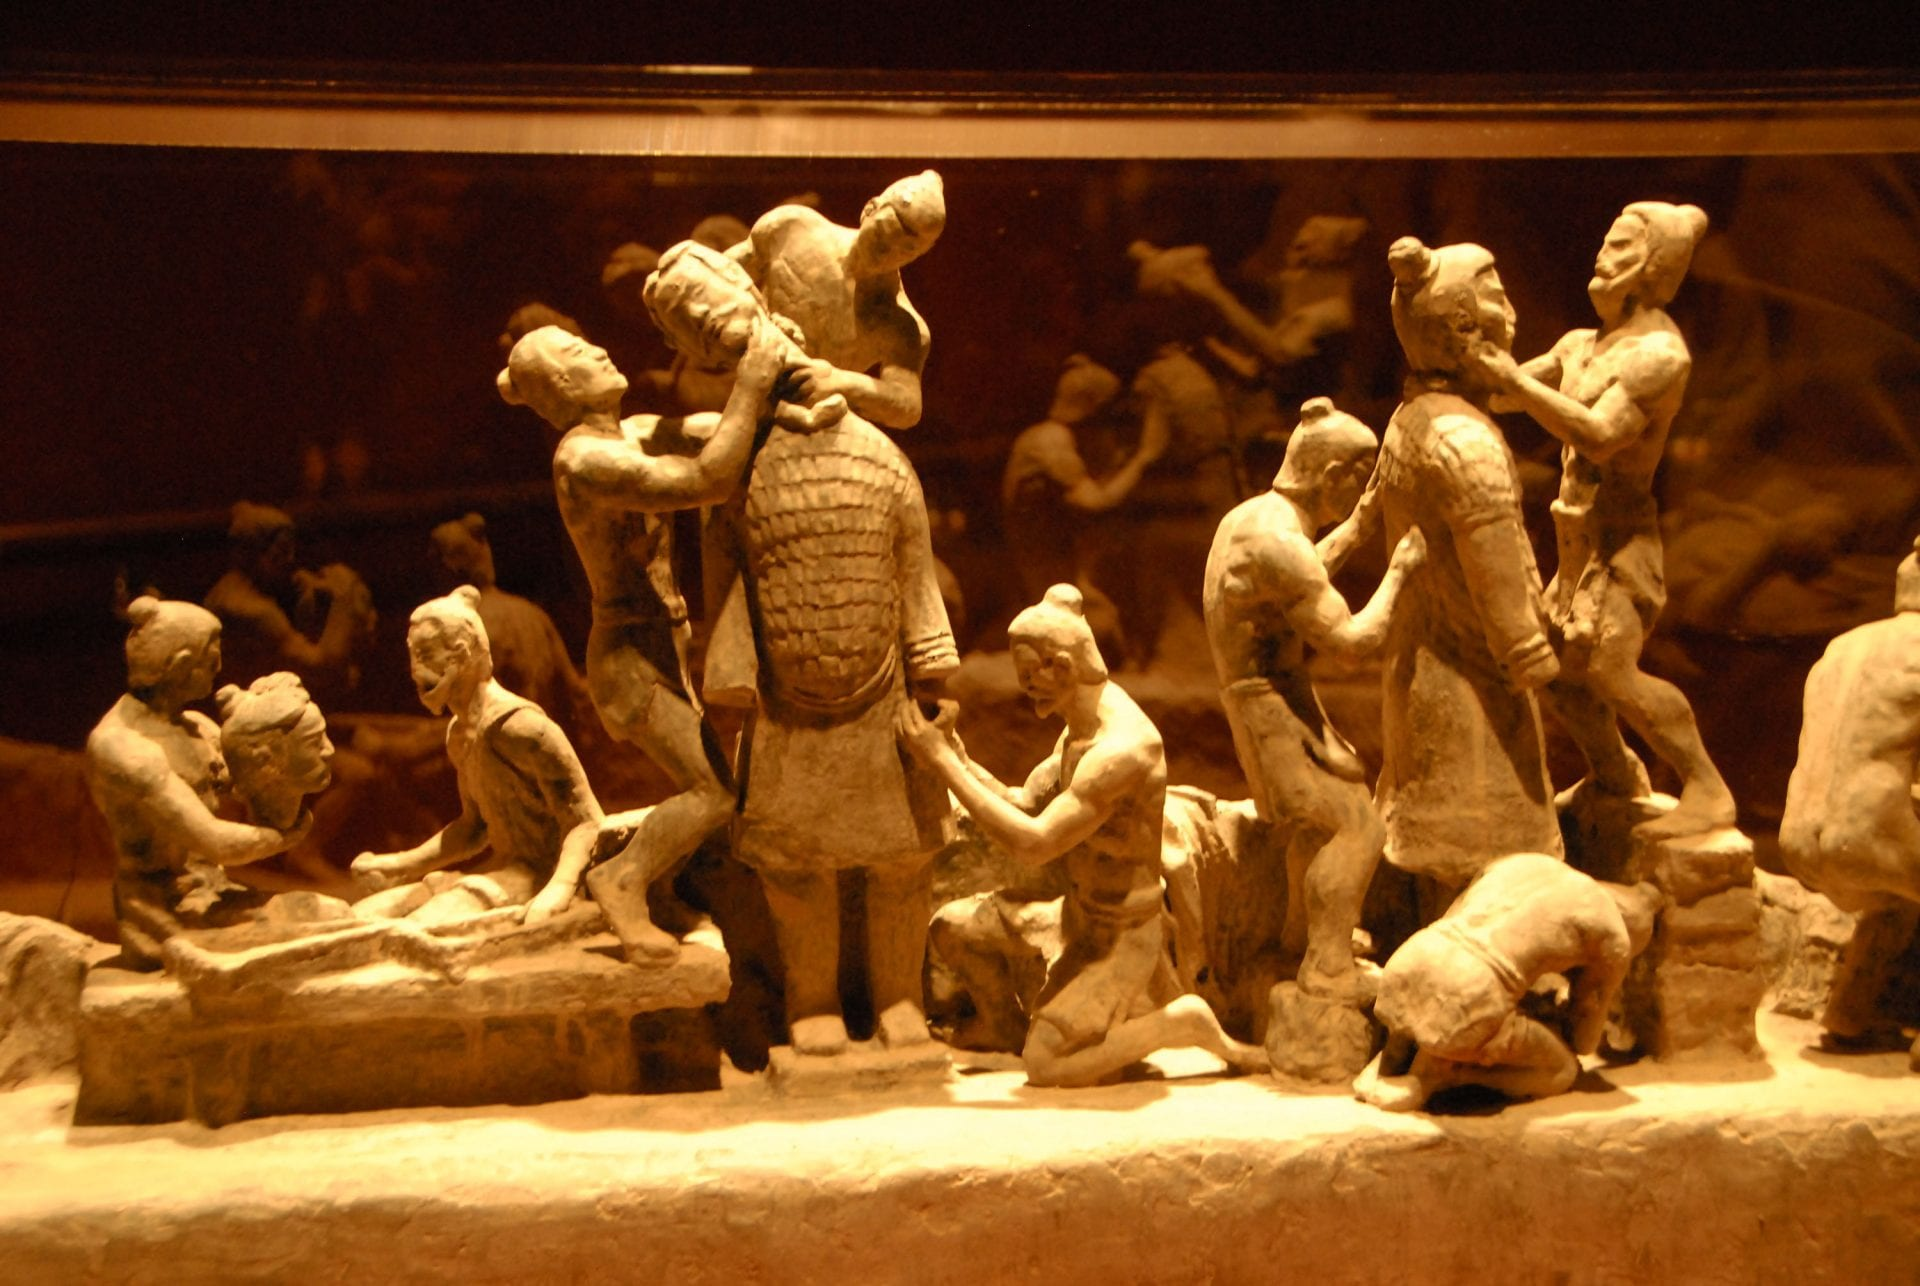 Terracotta-warrior-army-Emperor-Qin-Shi-Huang-first-emperor-of-China-assembly-line